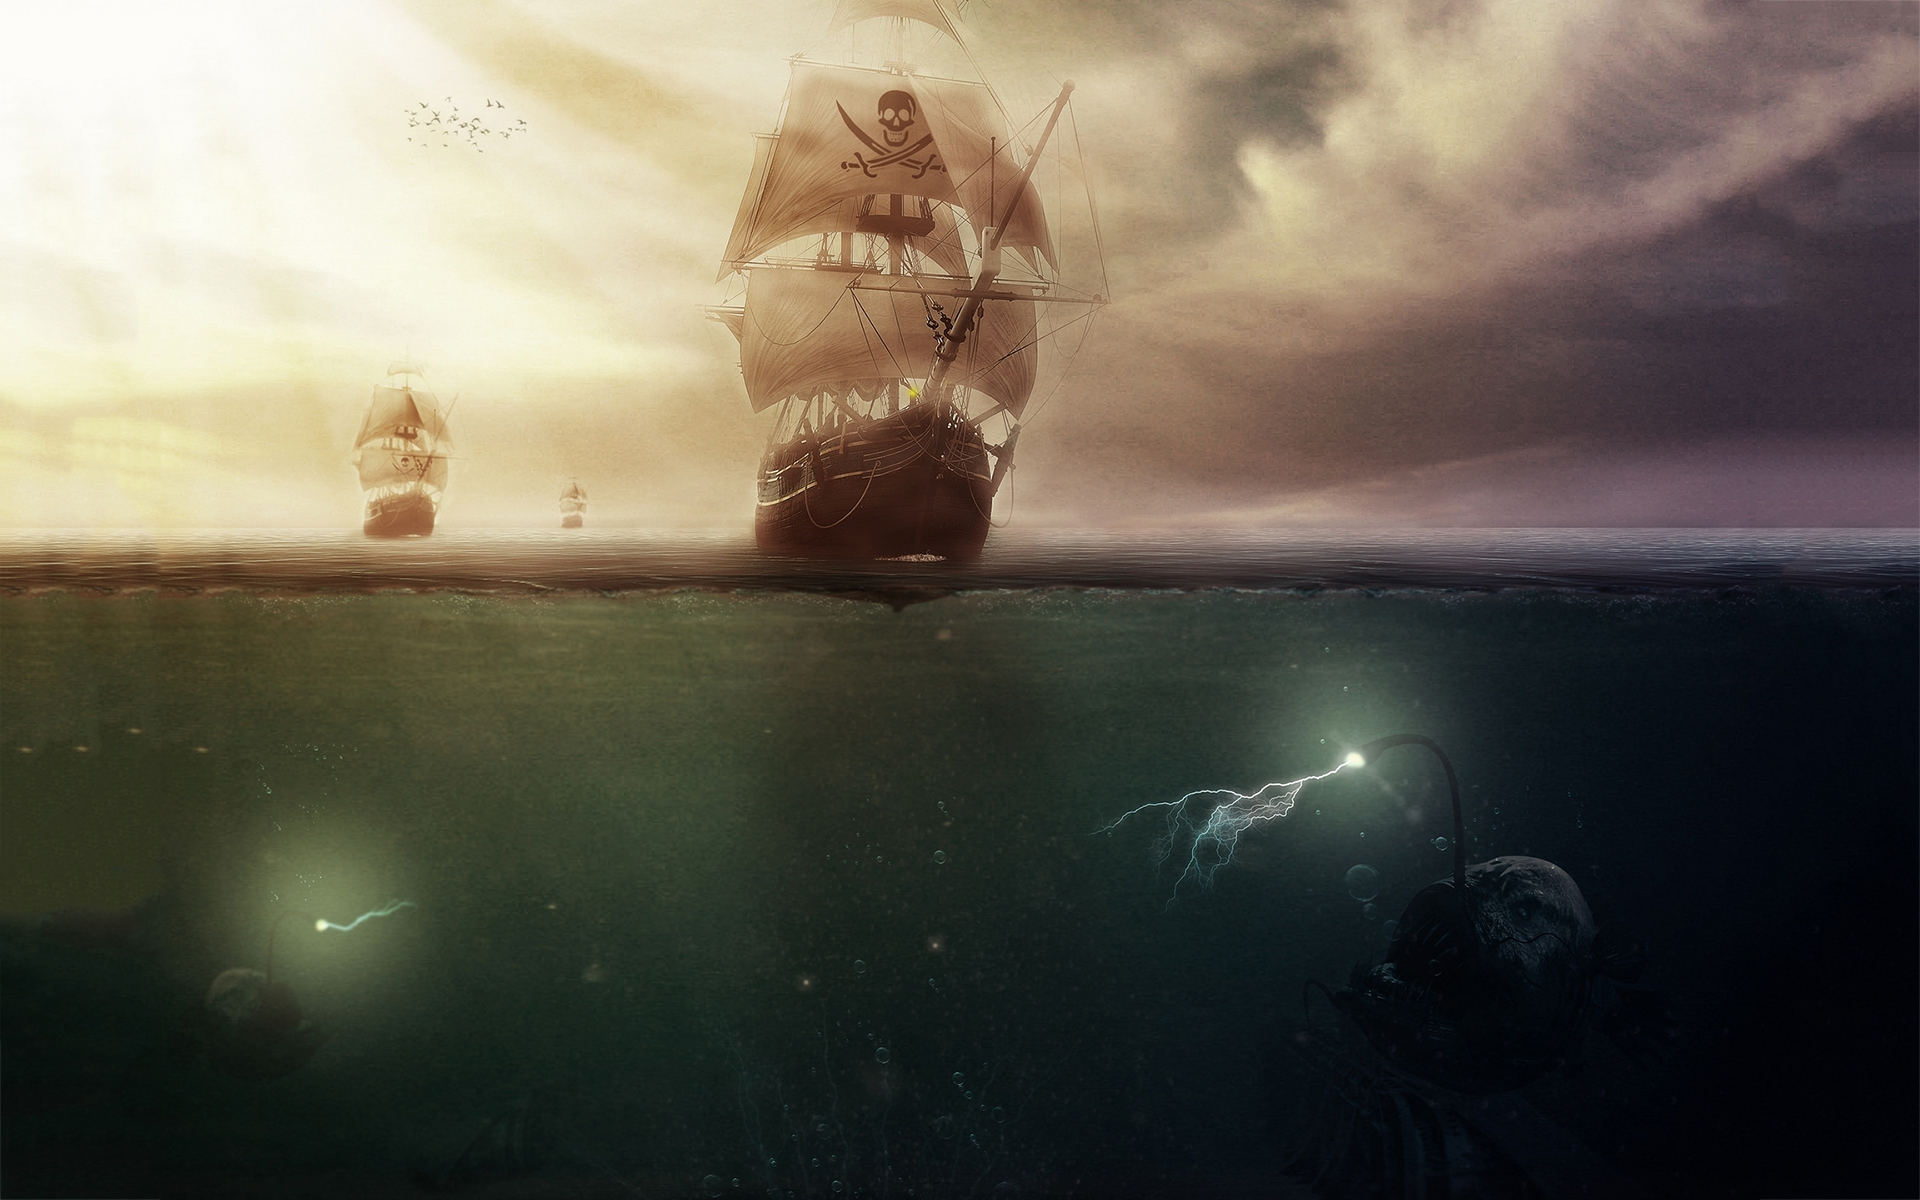 Pirates sea monsters